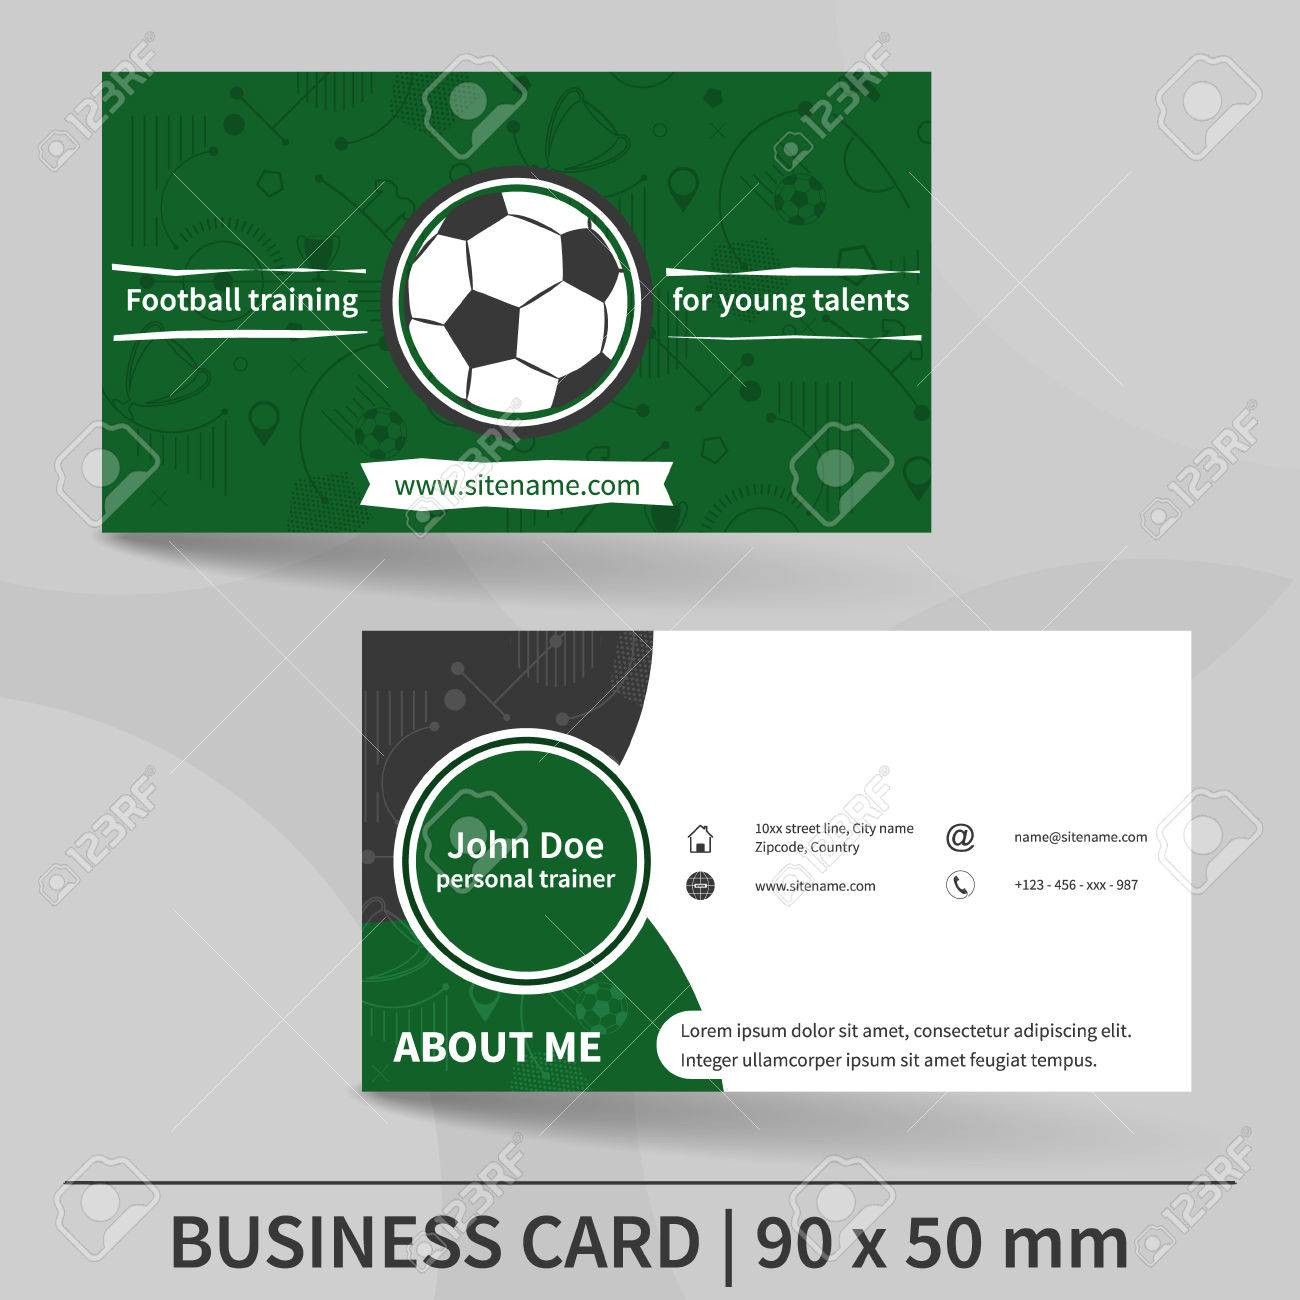 Examples of personal trainer business cards gallery free personal trainer business cards image collections free business business card template football training personal trainer business magicingreecefo Choice Image